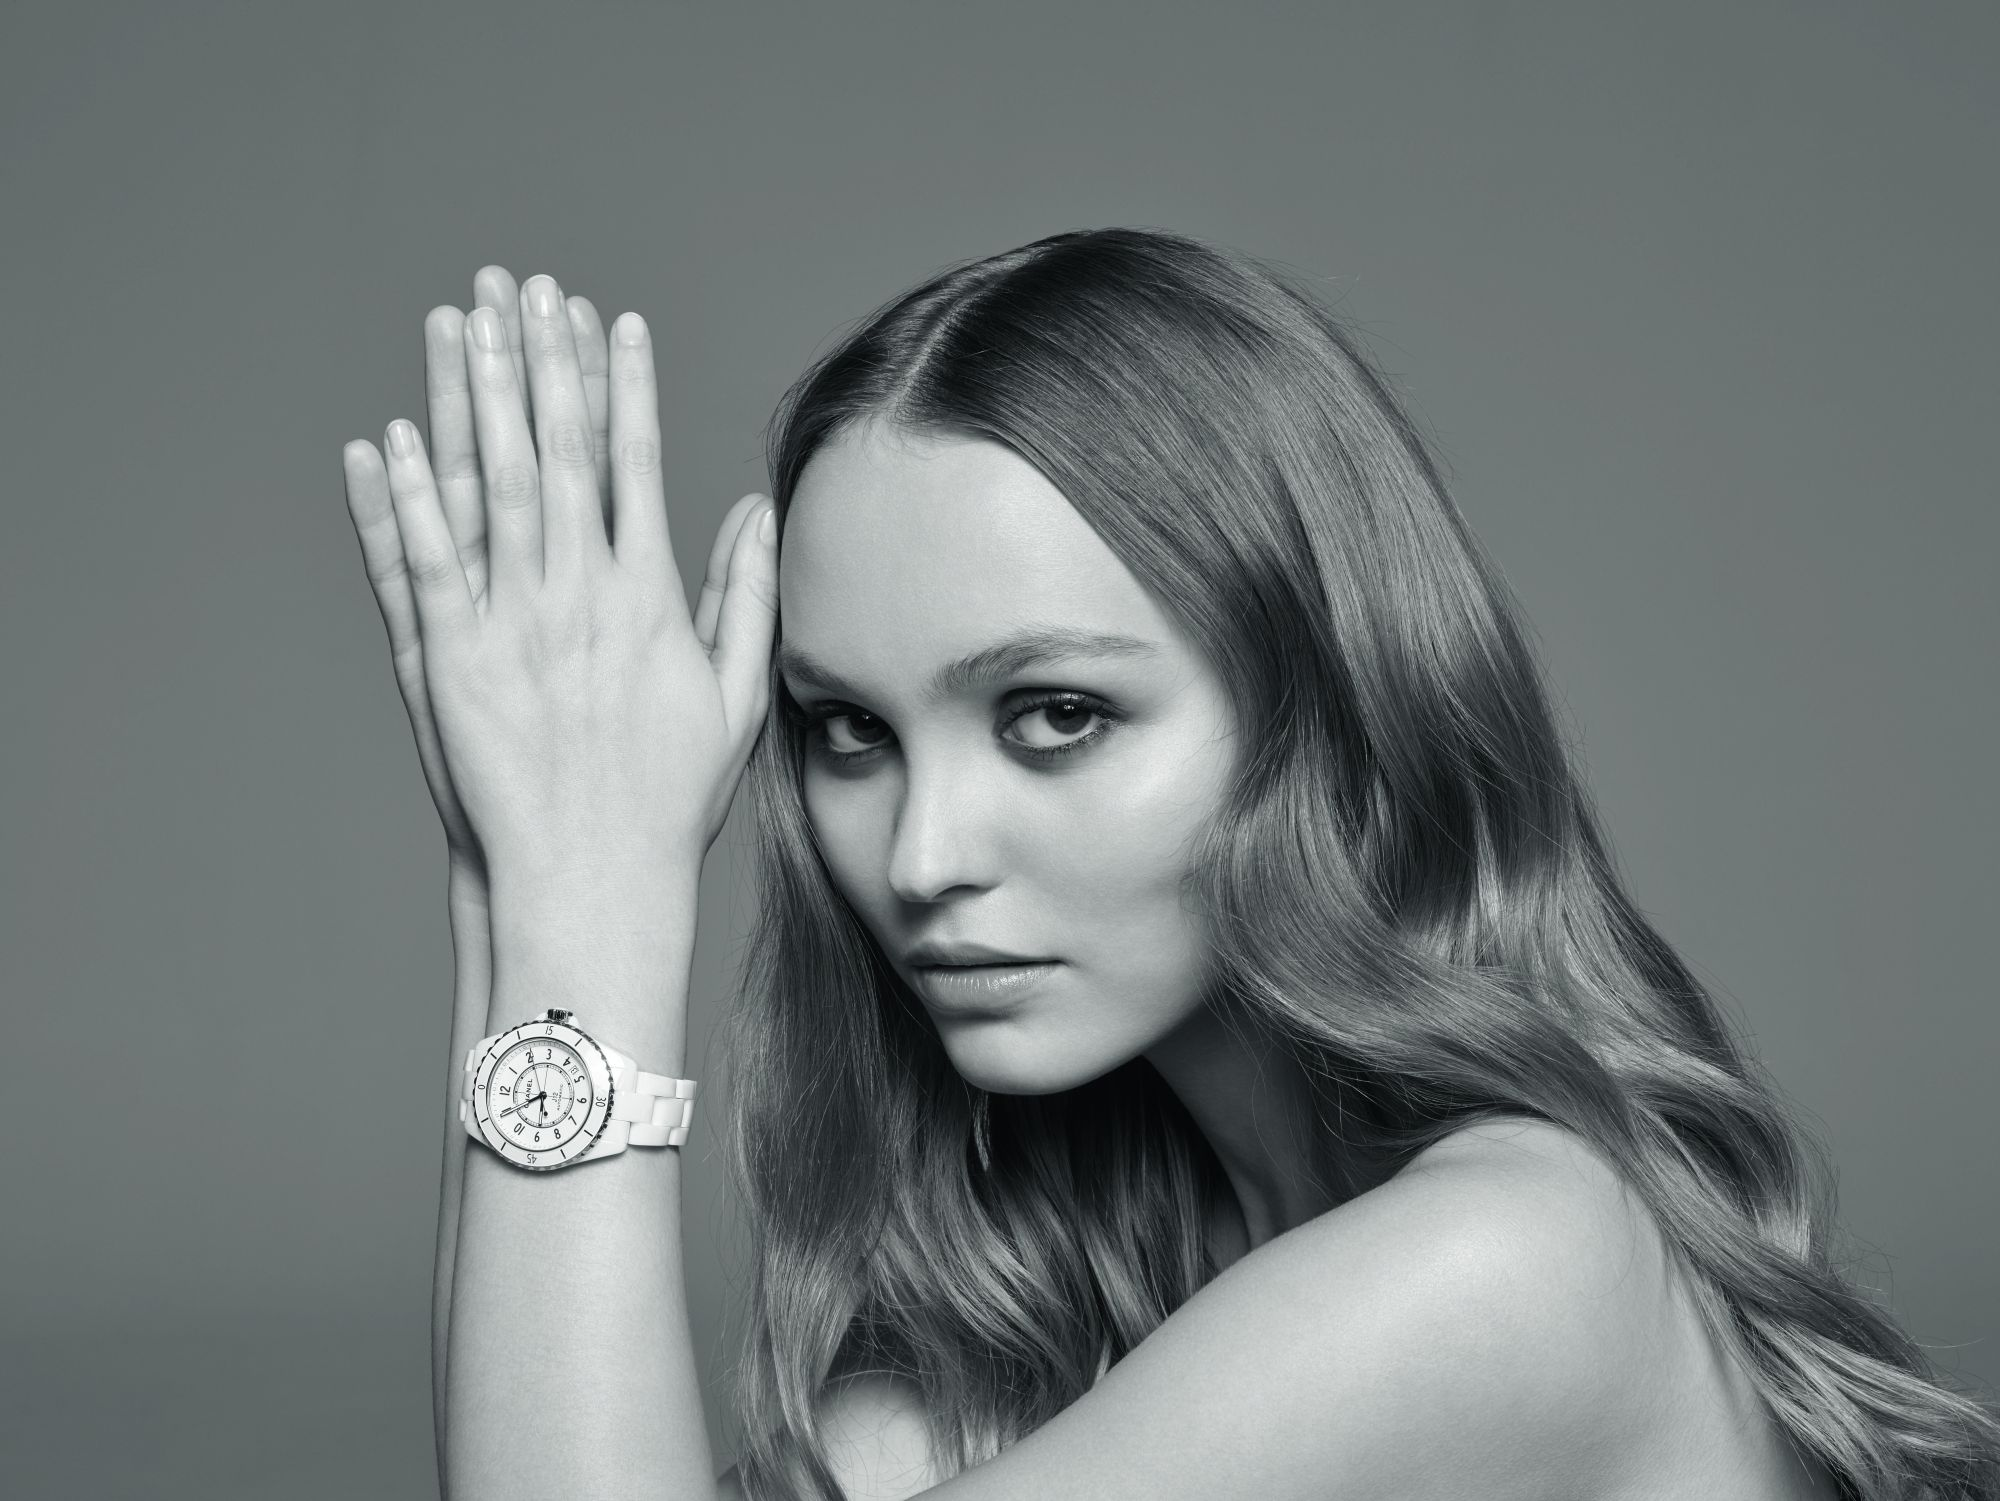 Time Flies in Style This Christmas With Chanel's J12 Watch